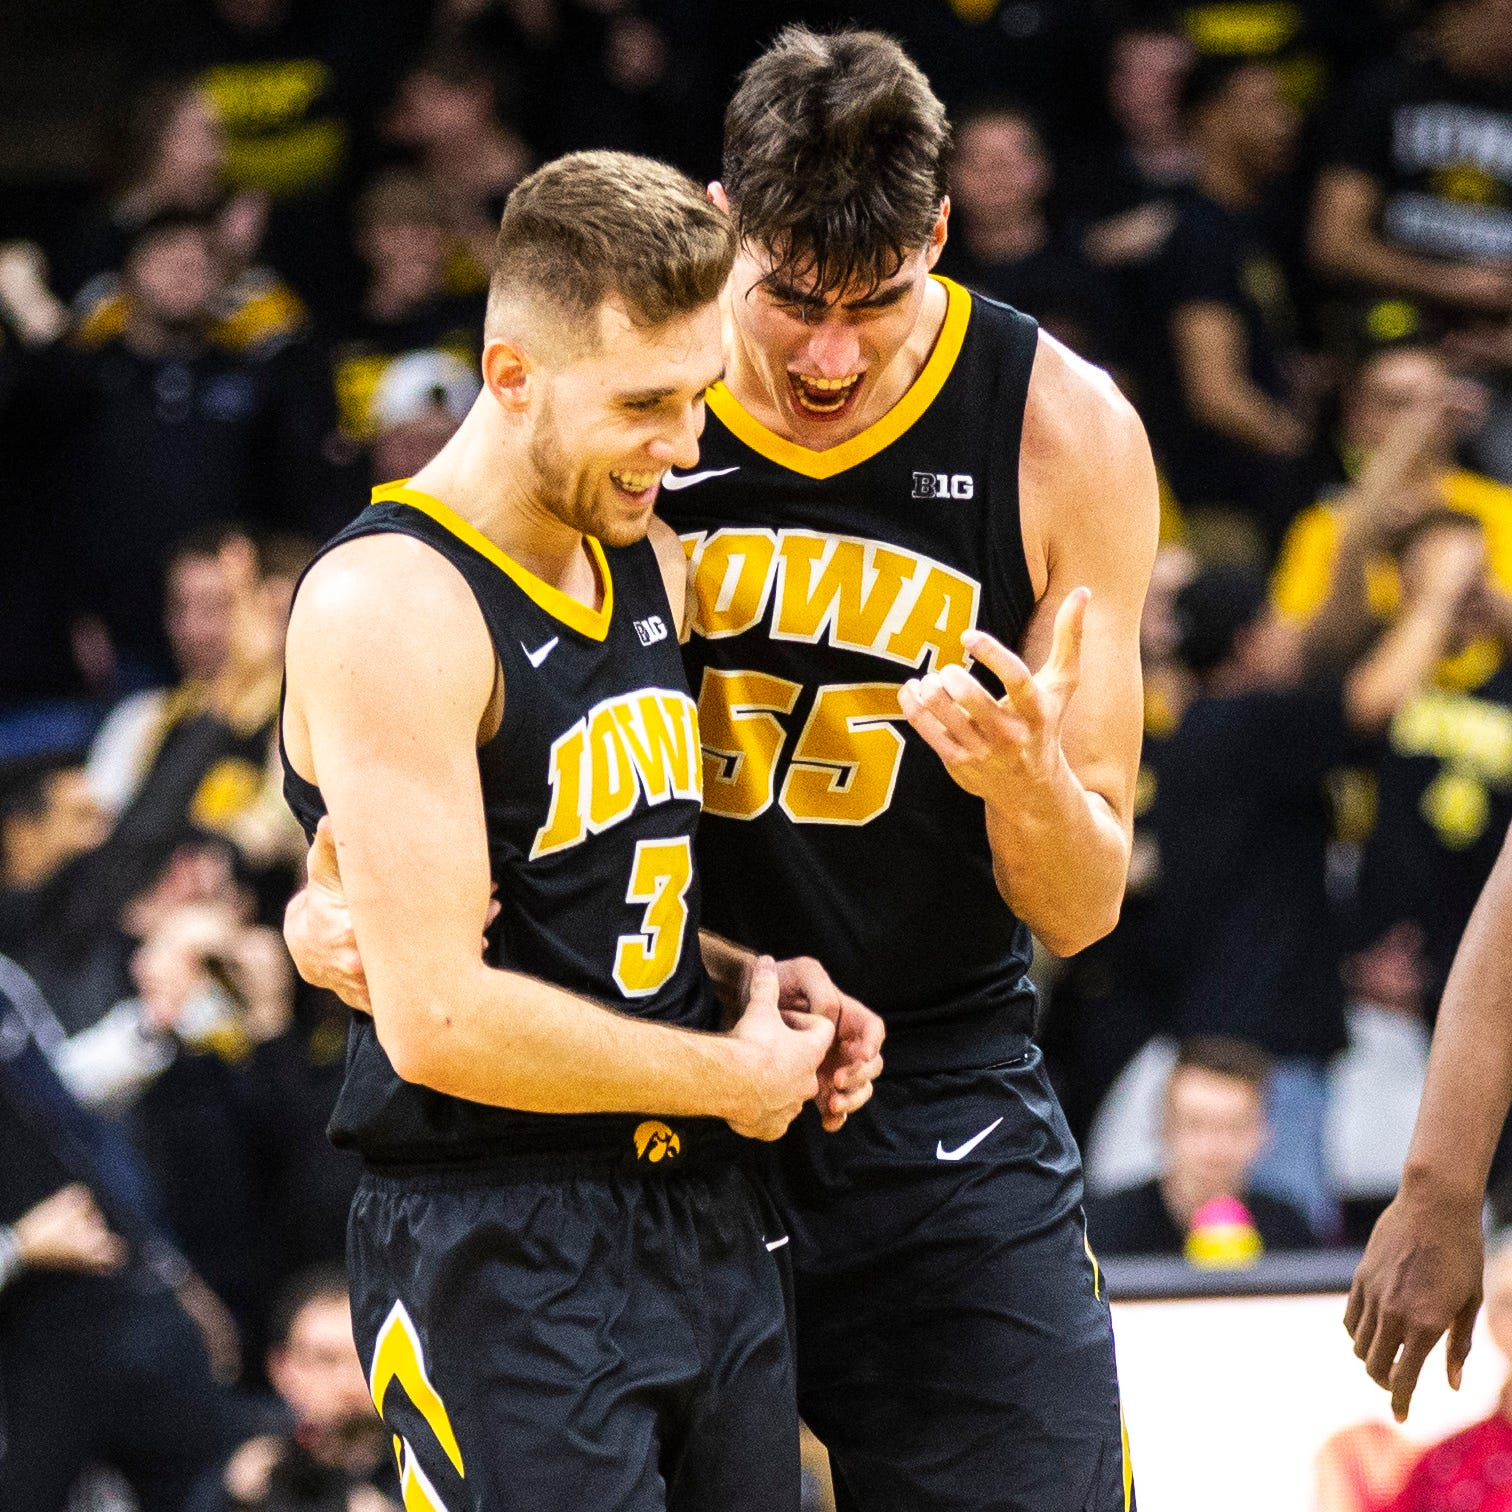 Riding four-game losing streak, Hawkeye basketball players take a break from Twitter